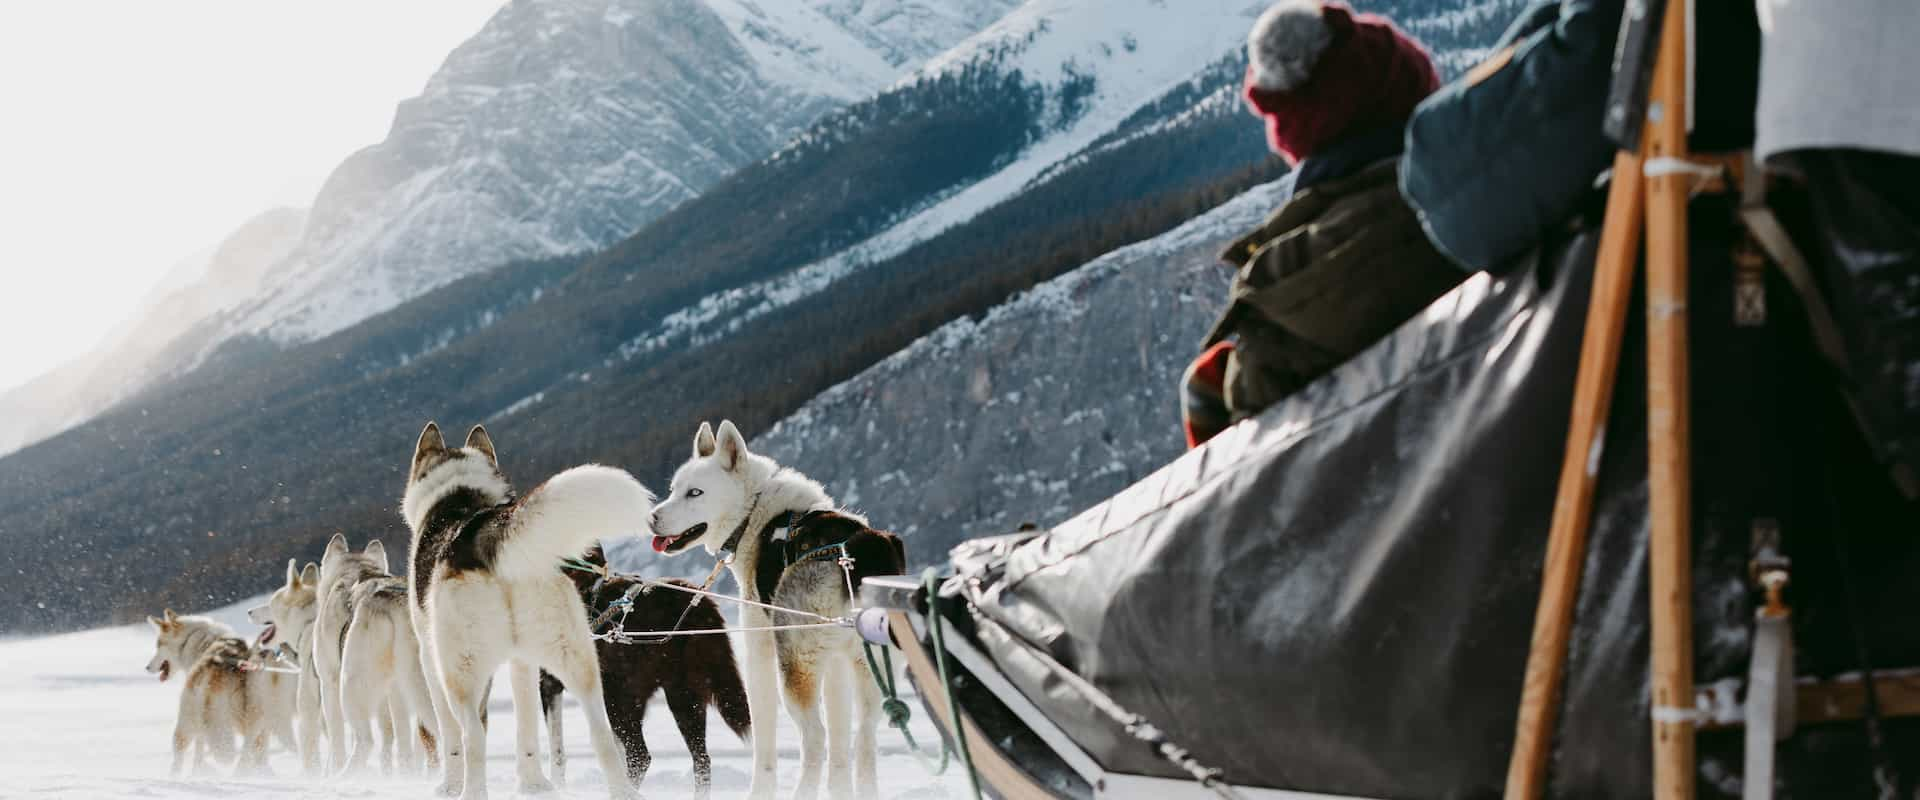 Drive your own team of dogs on a dogsled tour at Spray Lakes in the Canadian Rockies